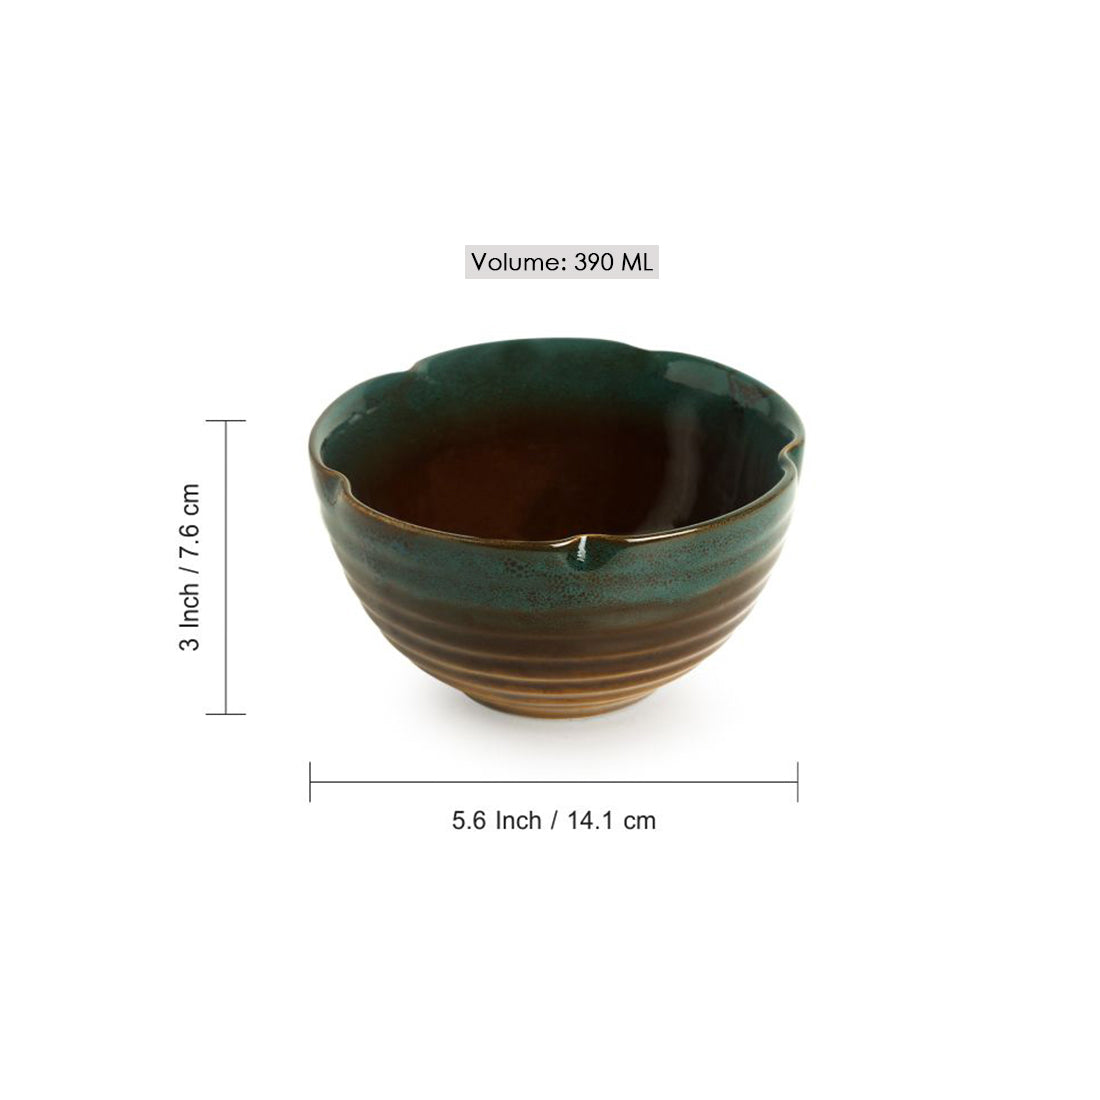 'Amber & Teal' Serving Bowls In Ceramic (Set Of 2)